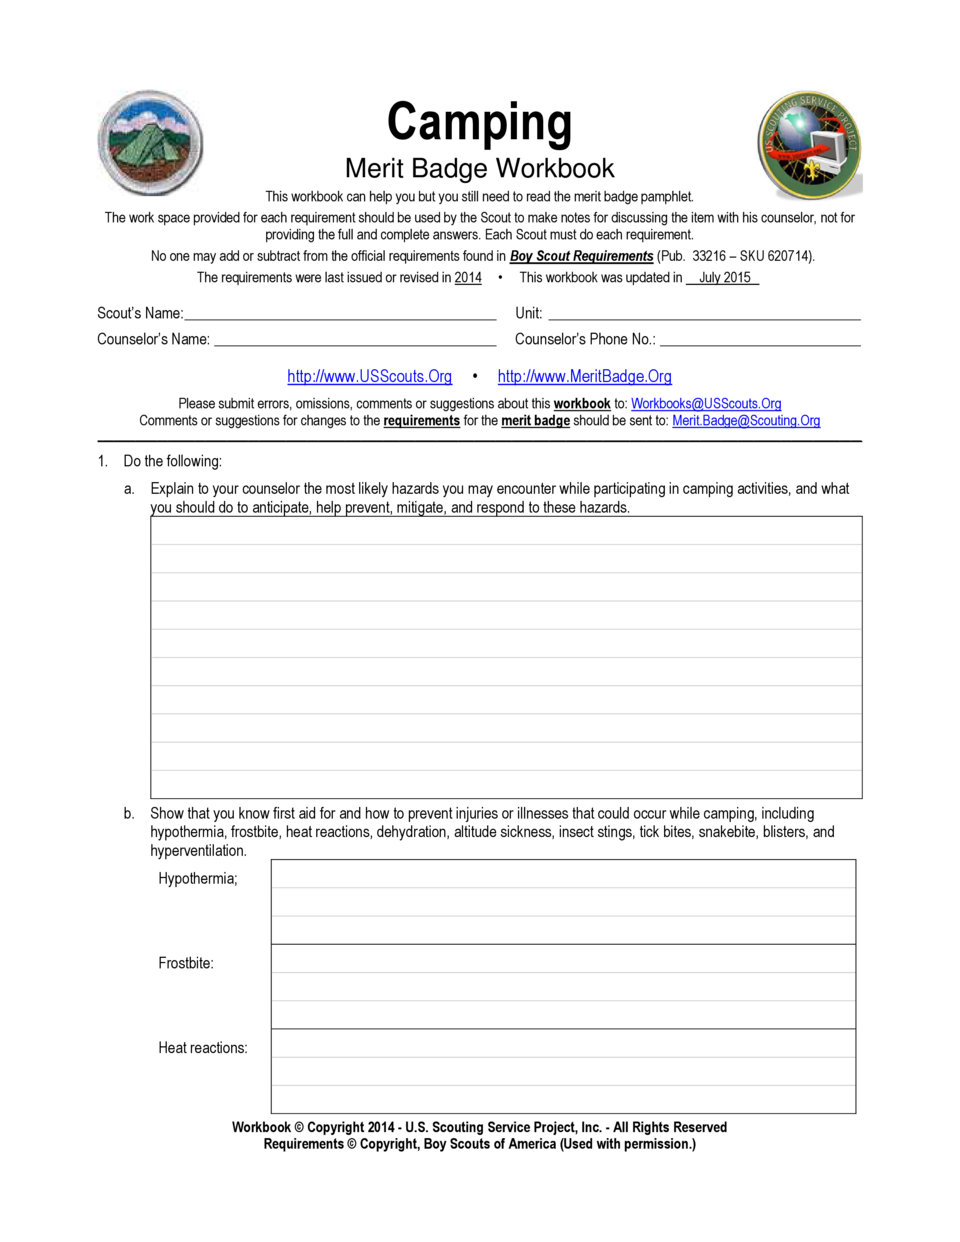 Hiking Merit Badge Worksheet Answers Free Worksheets Library – Hiking Merit Badge Worksheet